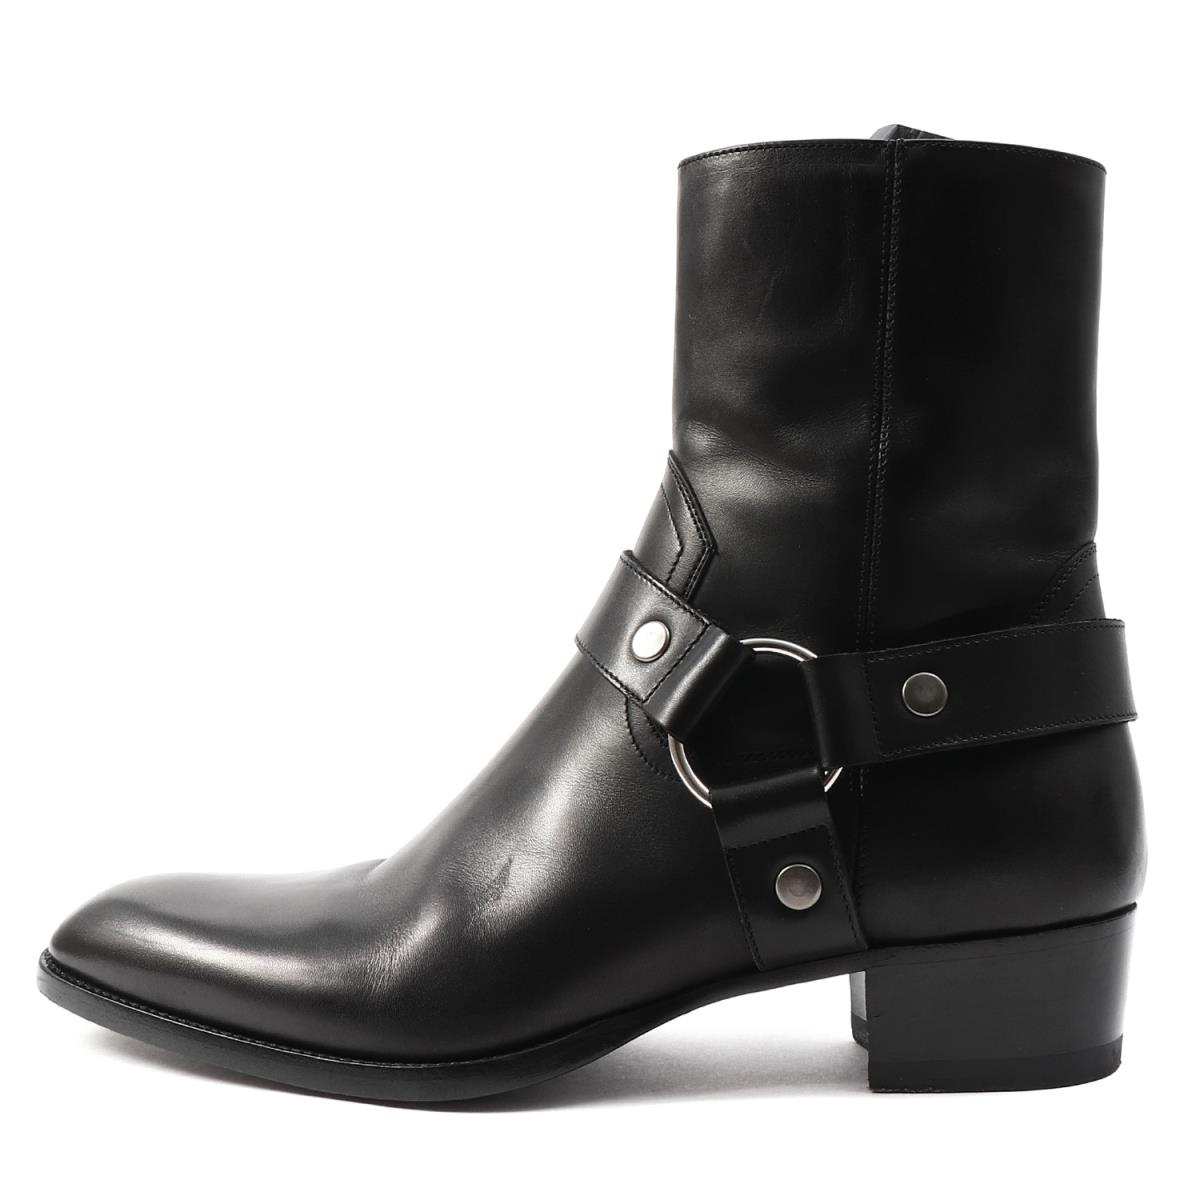 ae212c56a7c Zip leather boots (WYATT 40 HARNESS BOOT) black 41 with the SAINT LAURENT  PARIS ...